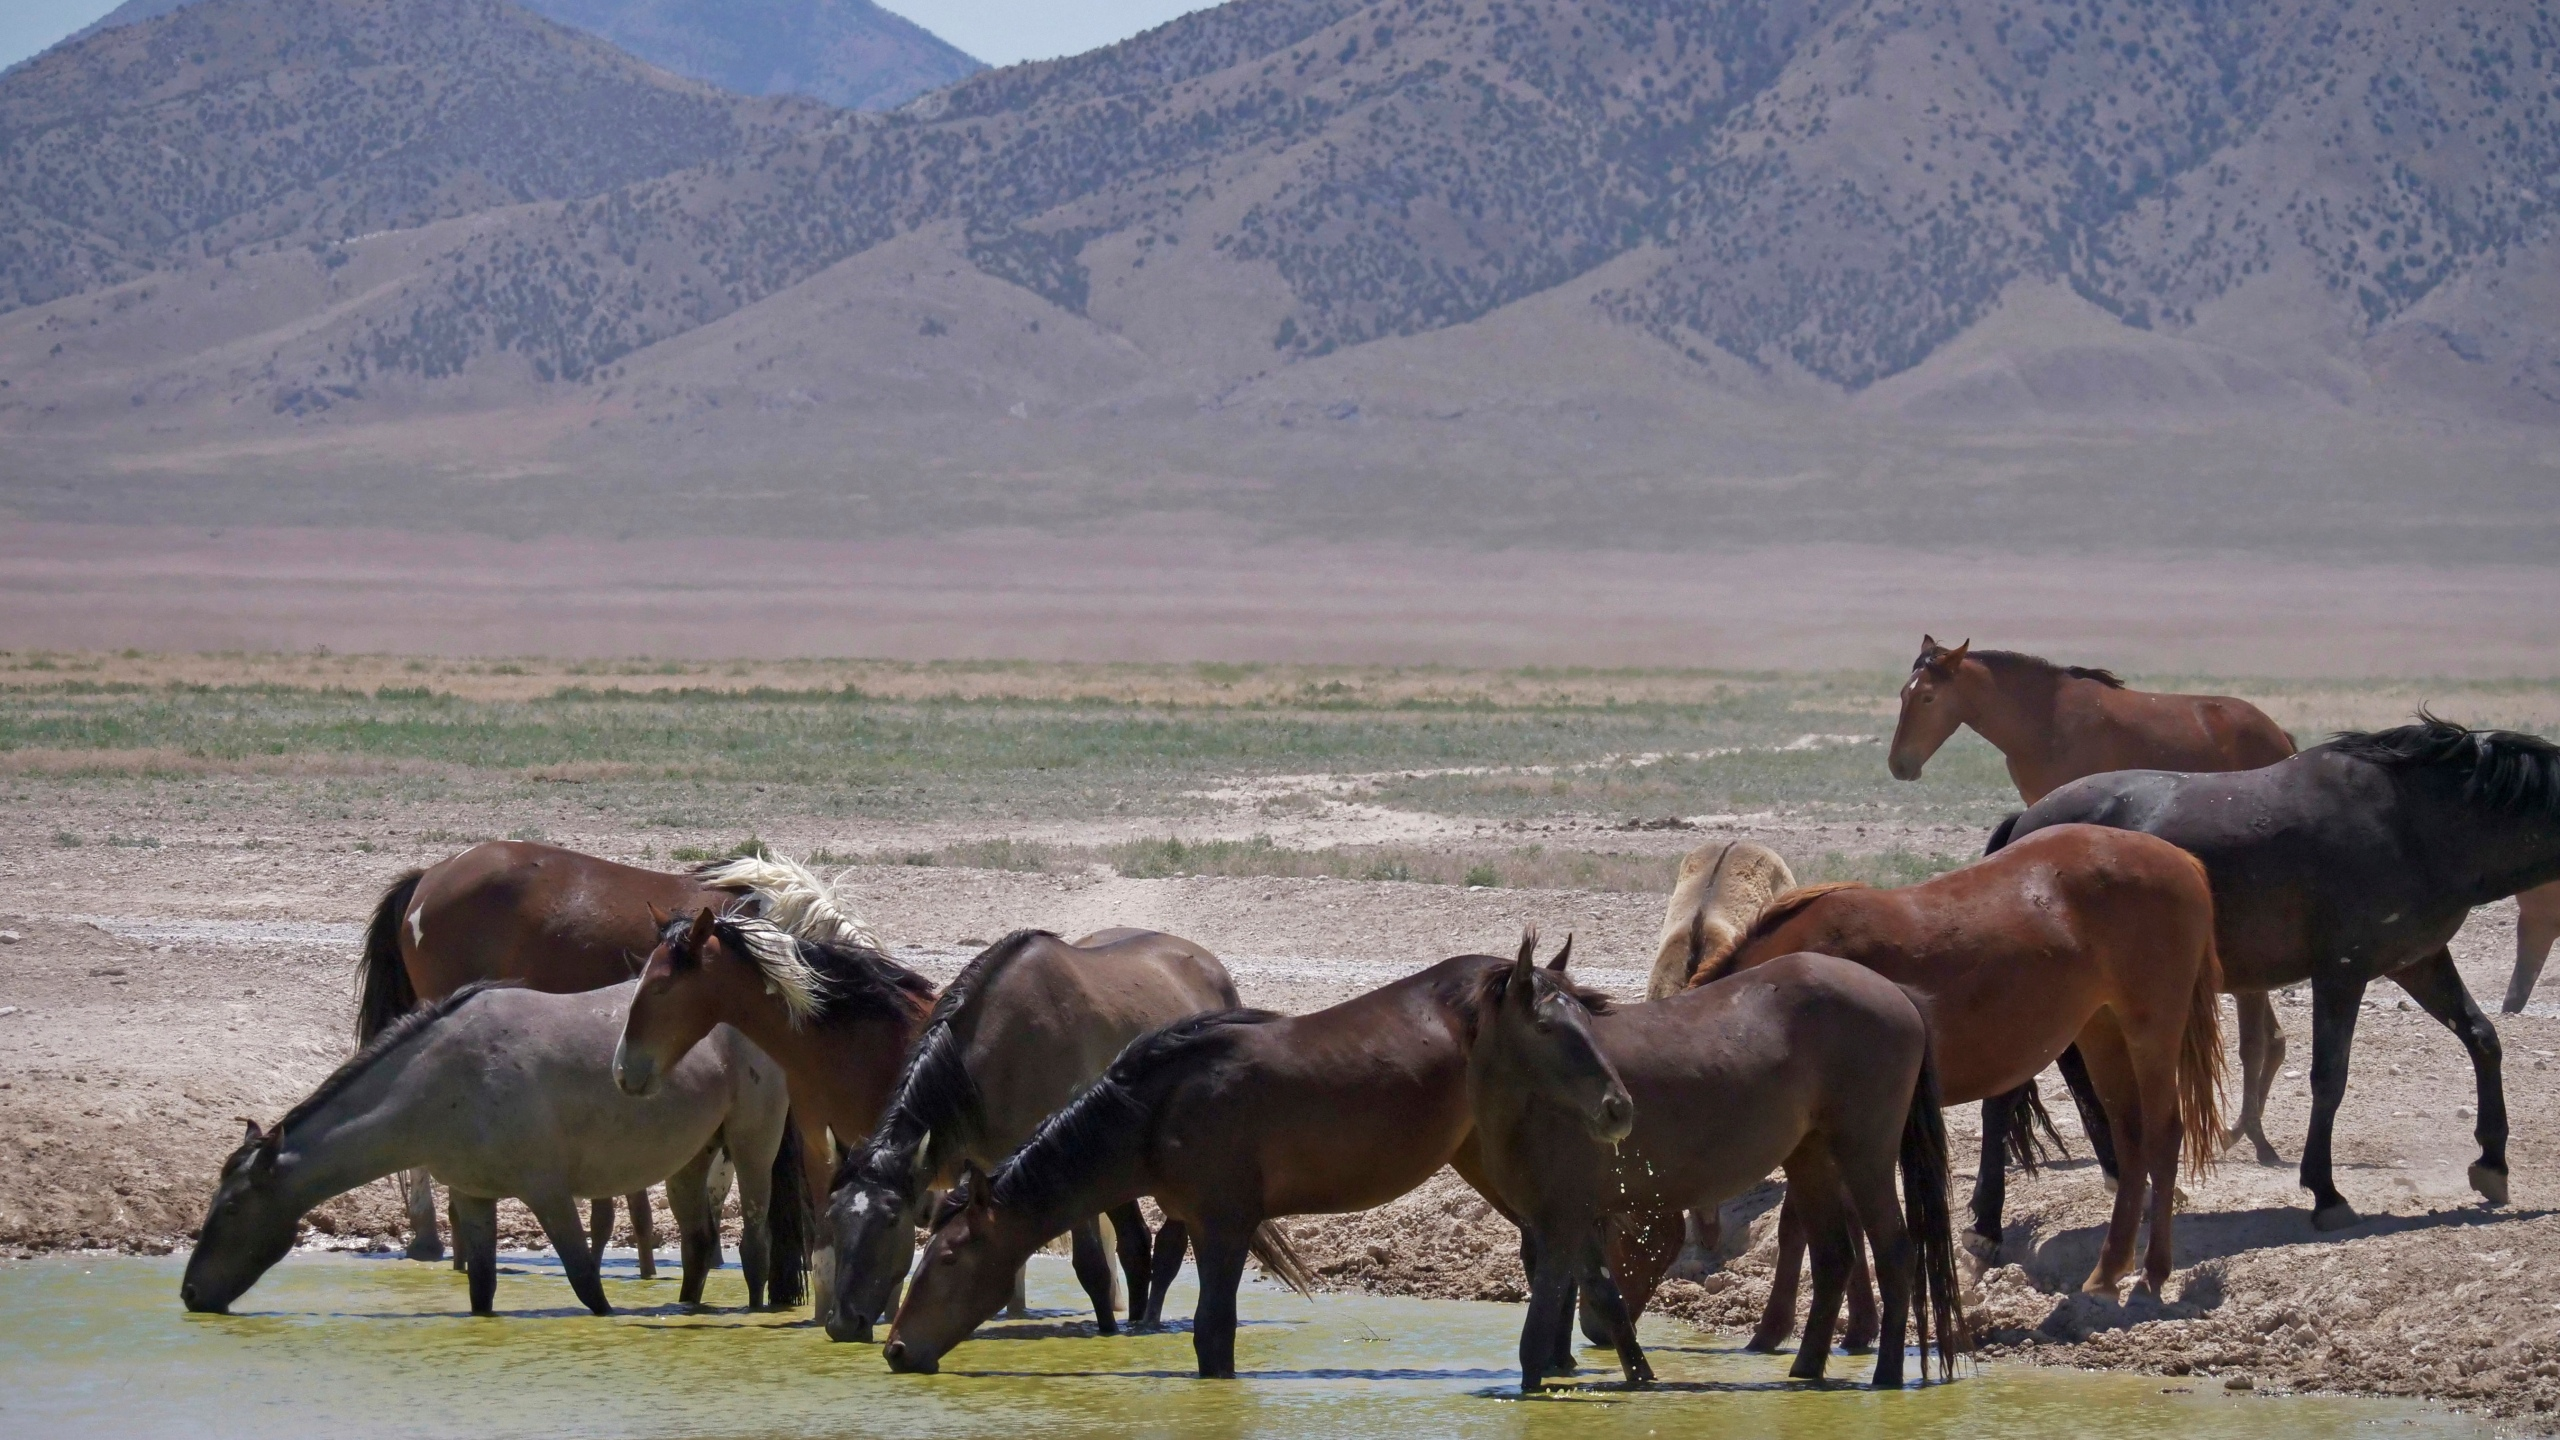 In this June 29, 2018, file photo, wild horses drink from a watering hole outside Salt Lake City. The U.S. Bureau of Land Management has approved construction of corrals in Colorado, Wyoming and Utah that can hold more than 8,000 wild horses captured on federal rangeland in the West, a move that should allow the agency to accelerate roundups that have been slowed by excess capacity at existing holding facilities. (AP Photo/Rick Bowmer, File)